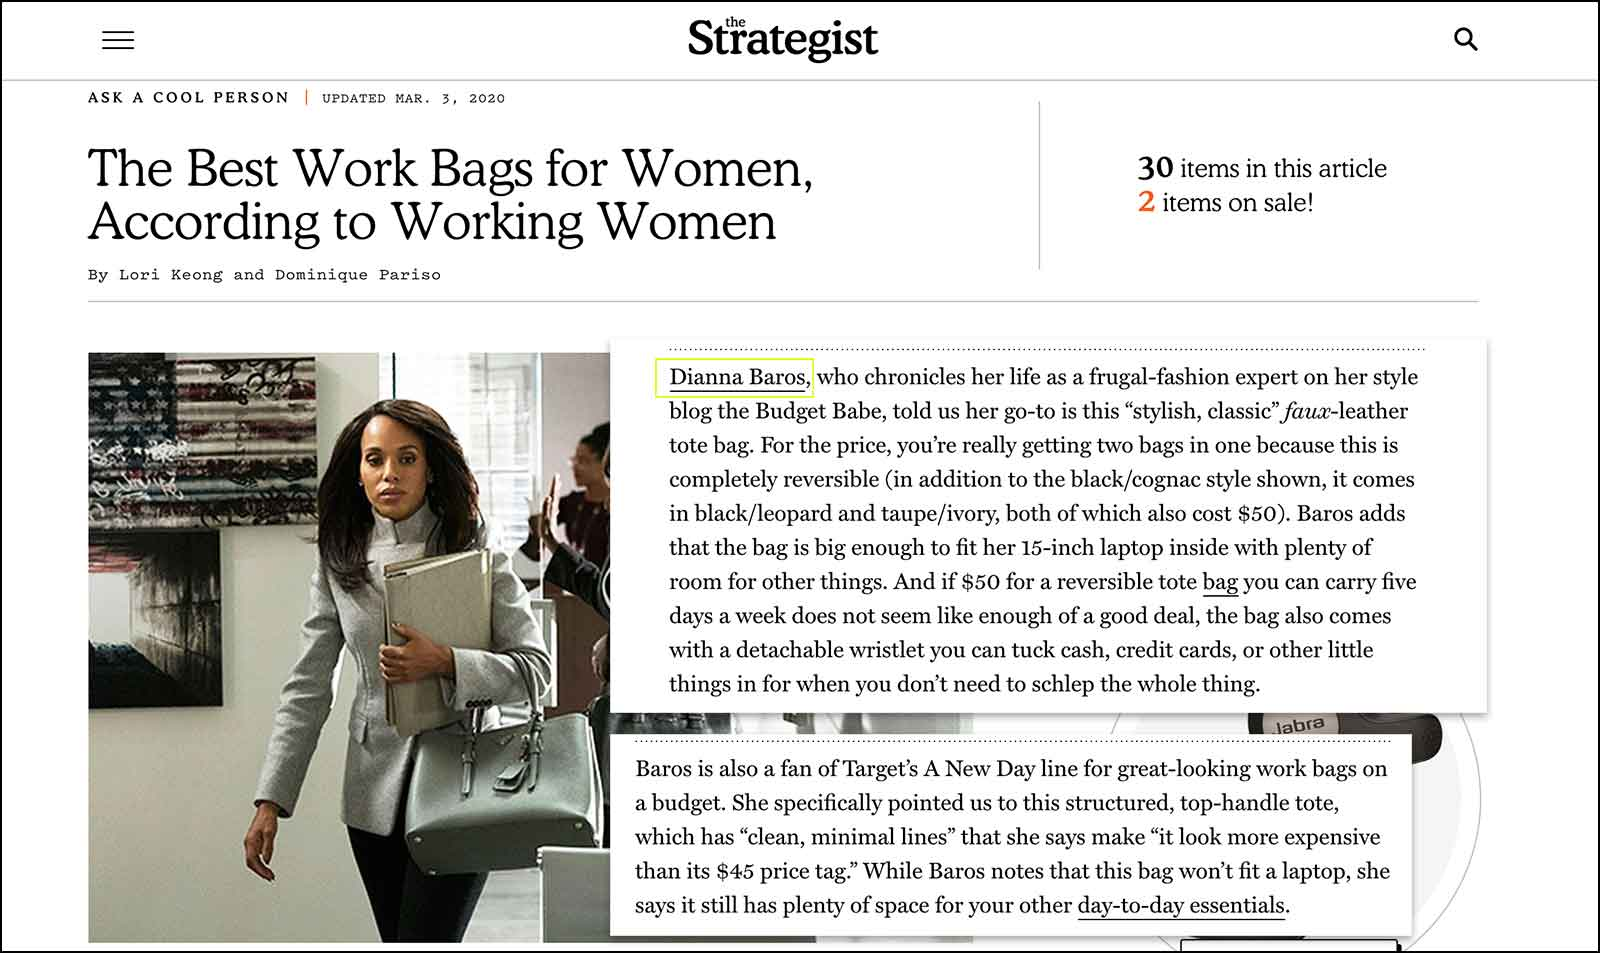 The Strategist rounds up the best bags for working women on every budget. Dianna Baros contributes.